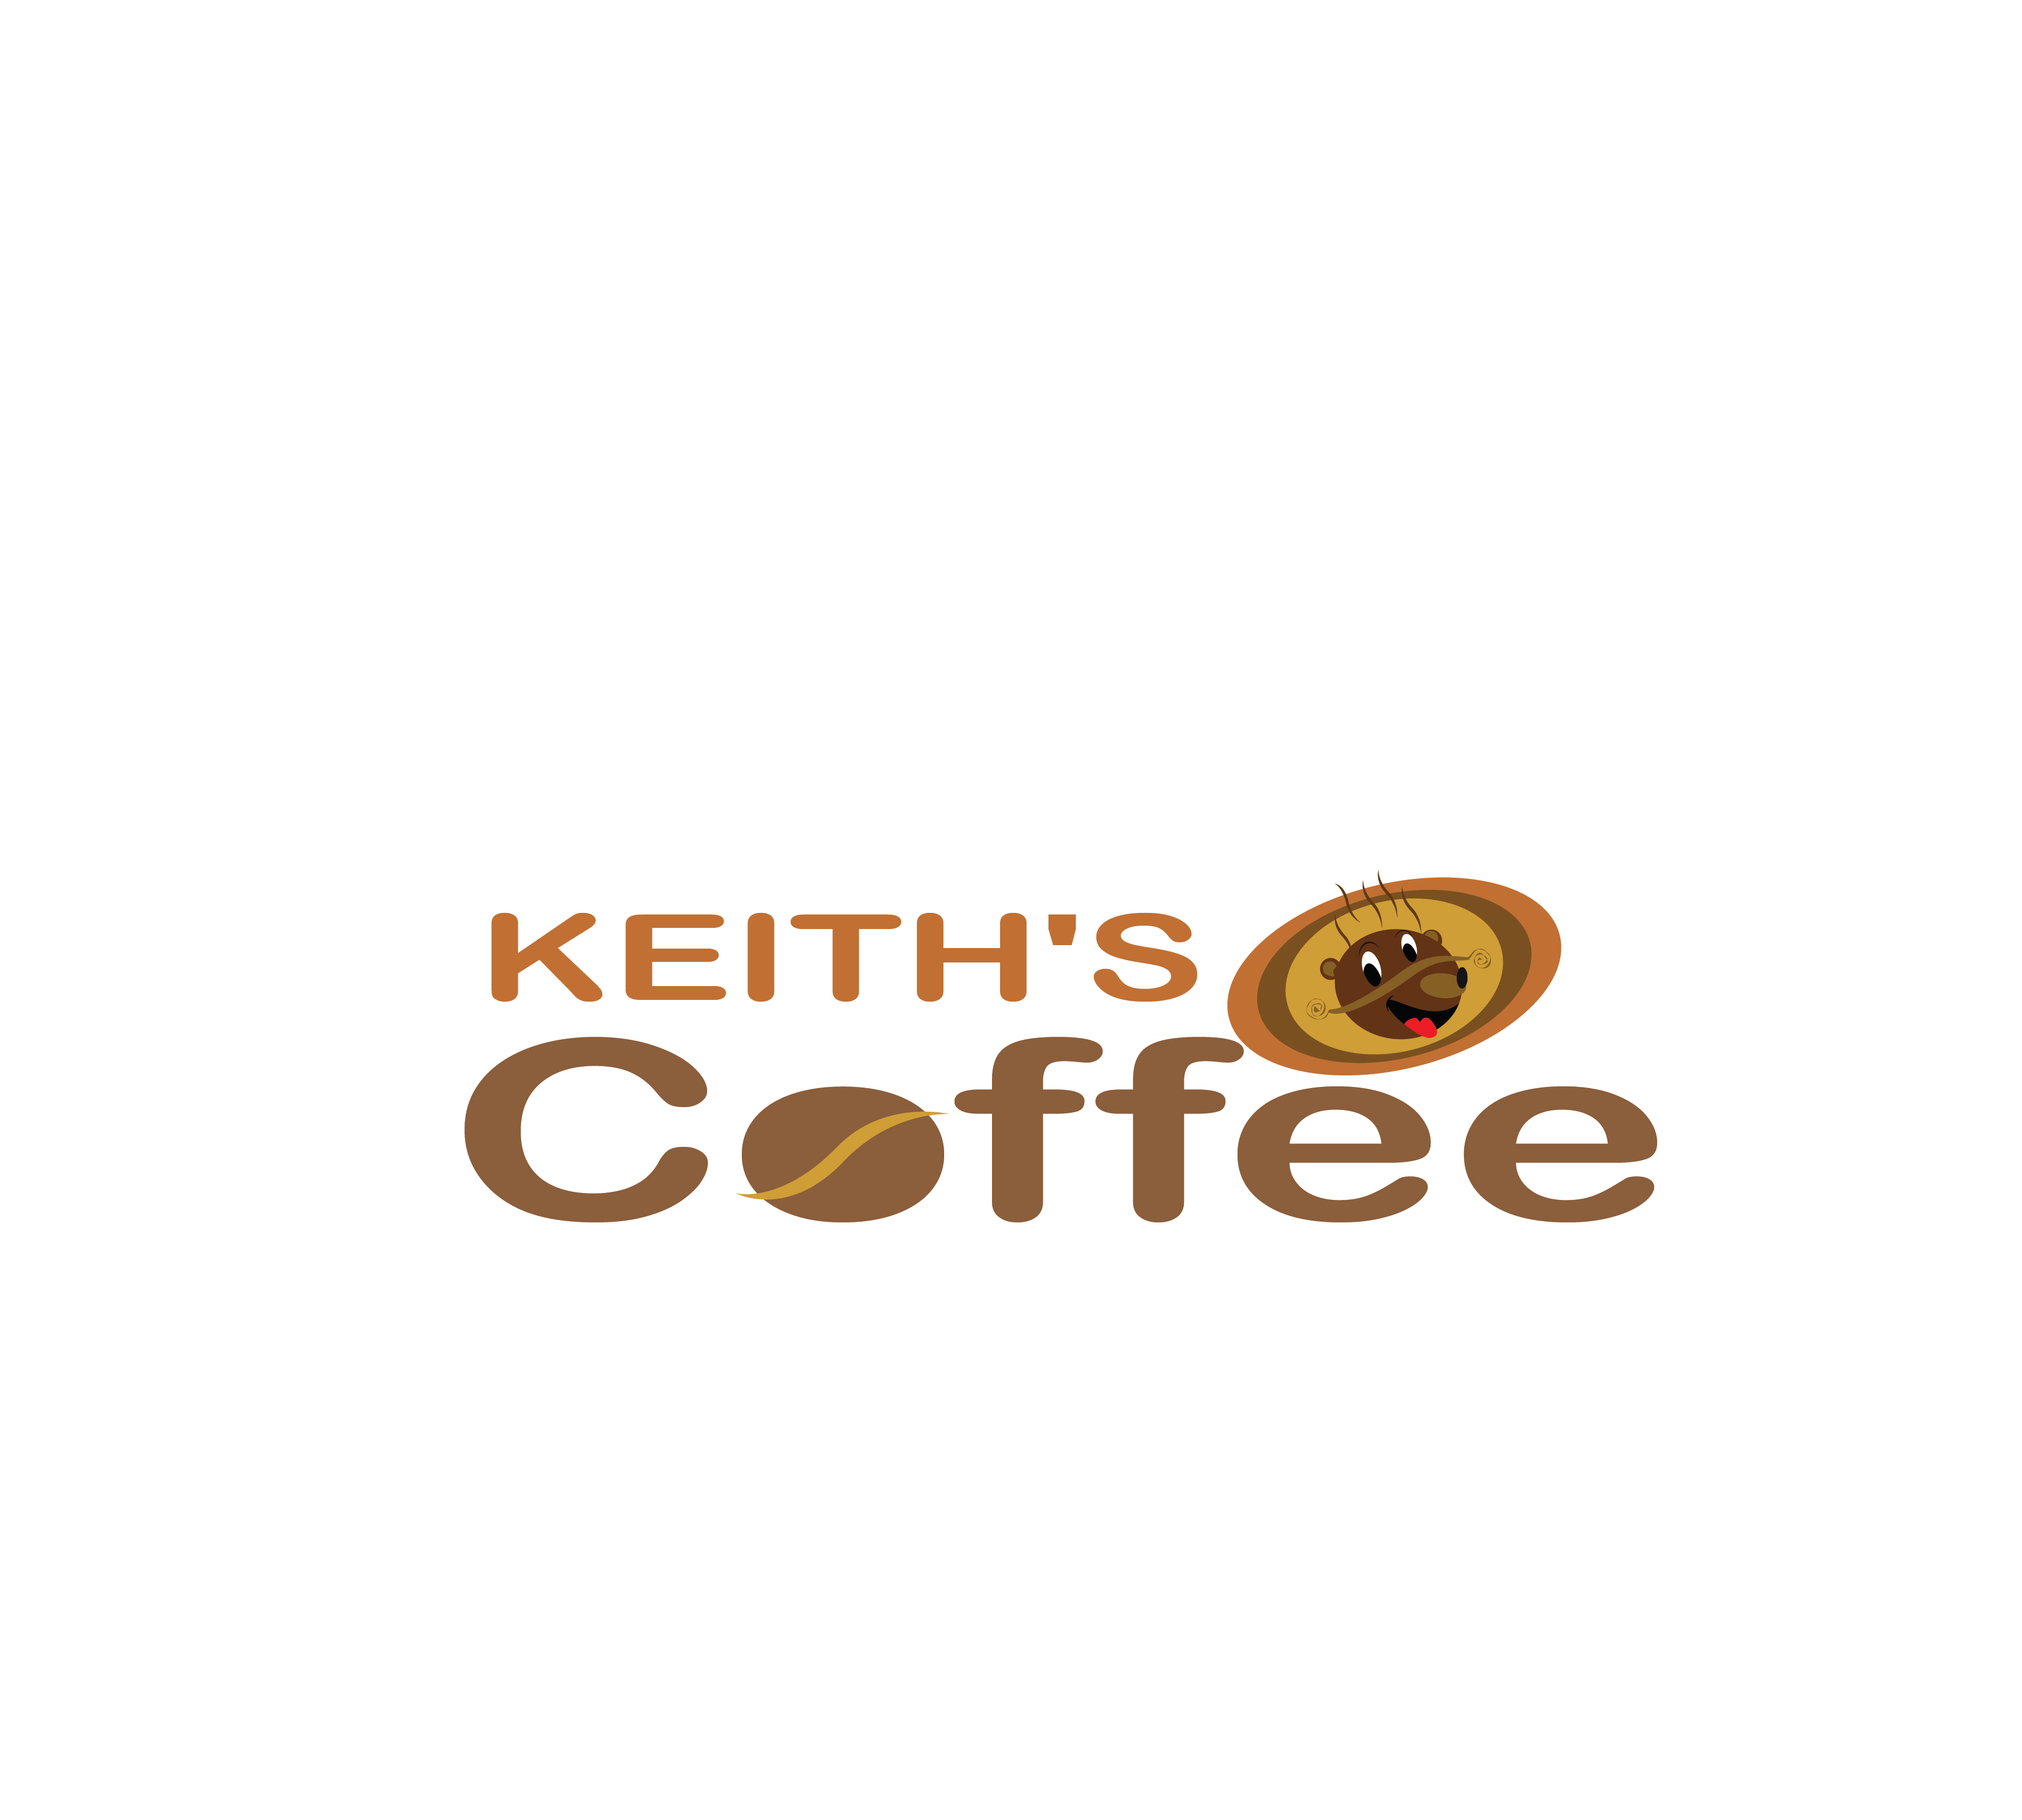 Logo Design by 3draw - Entry No. 14 in the Logo Design Contest Keef's coffee Logo Design.